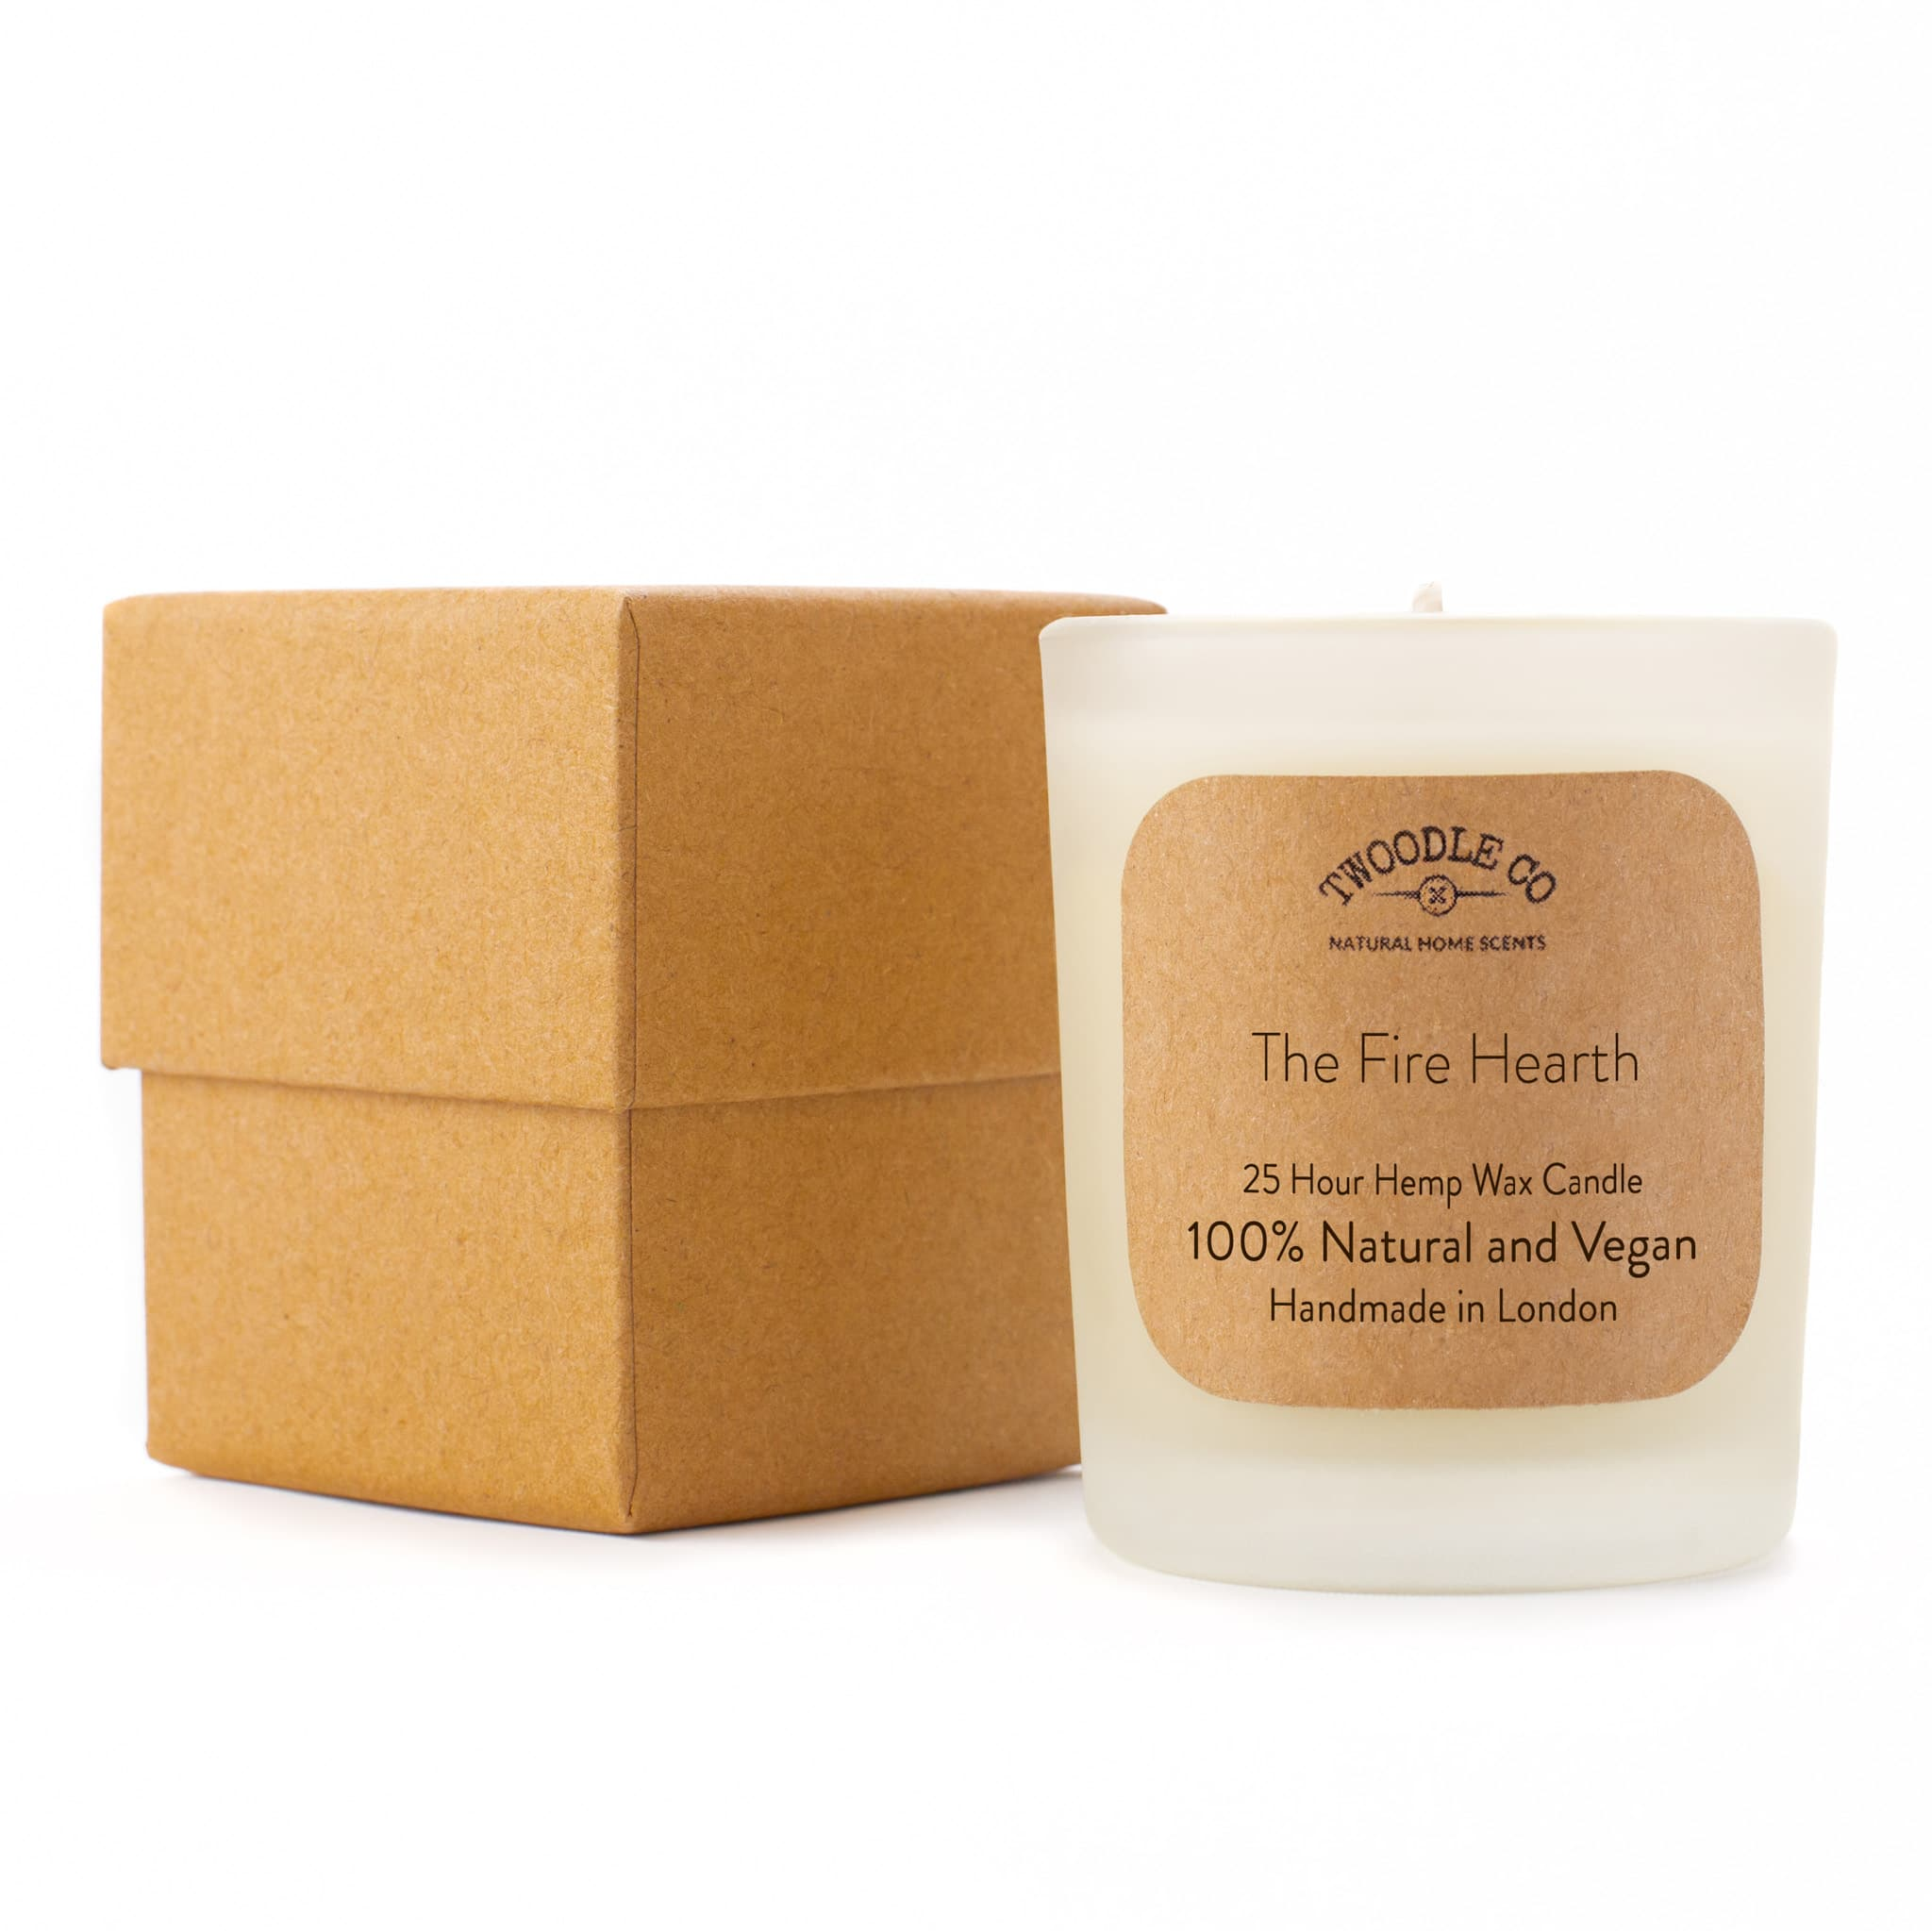 The Fire Hearth Small Scented Hemp Wax autumn candle by Twoodle Co Natural Home Scents